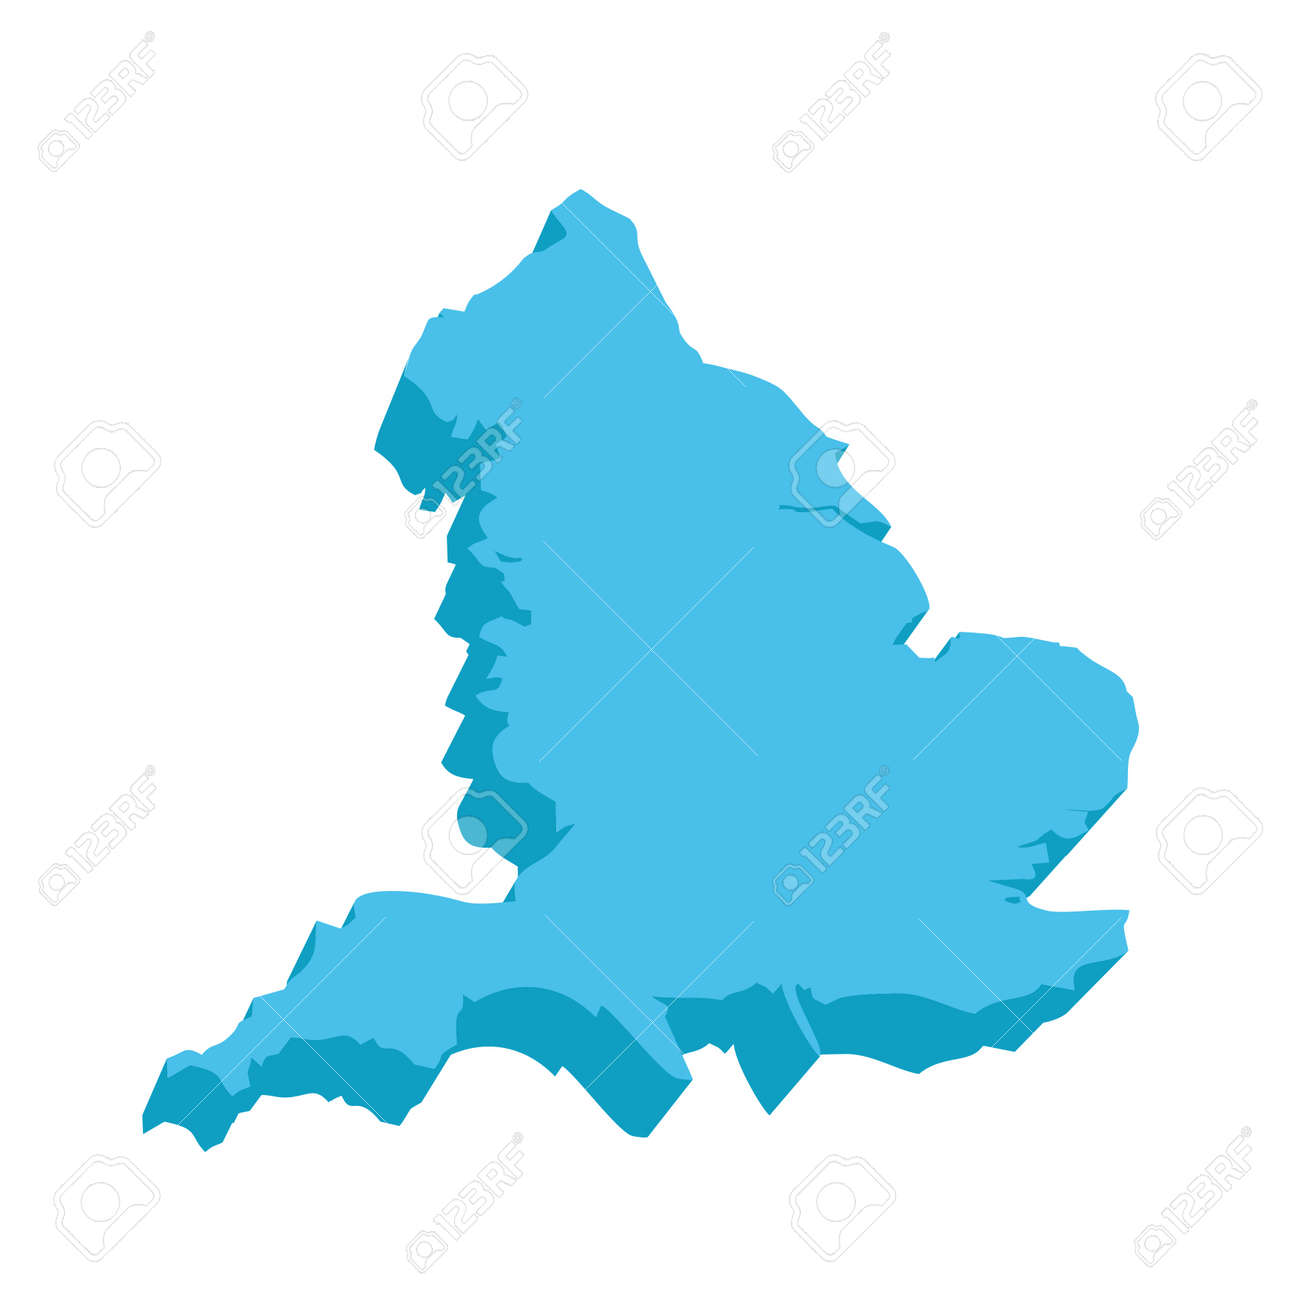 3d Map Of England.A Map Of England 3d On White Background